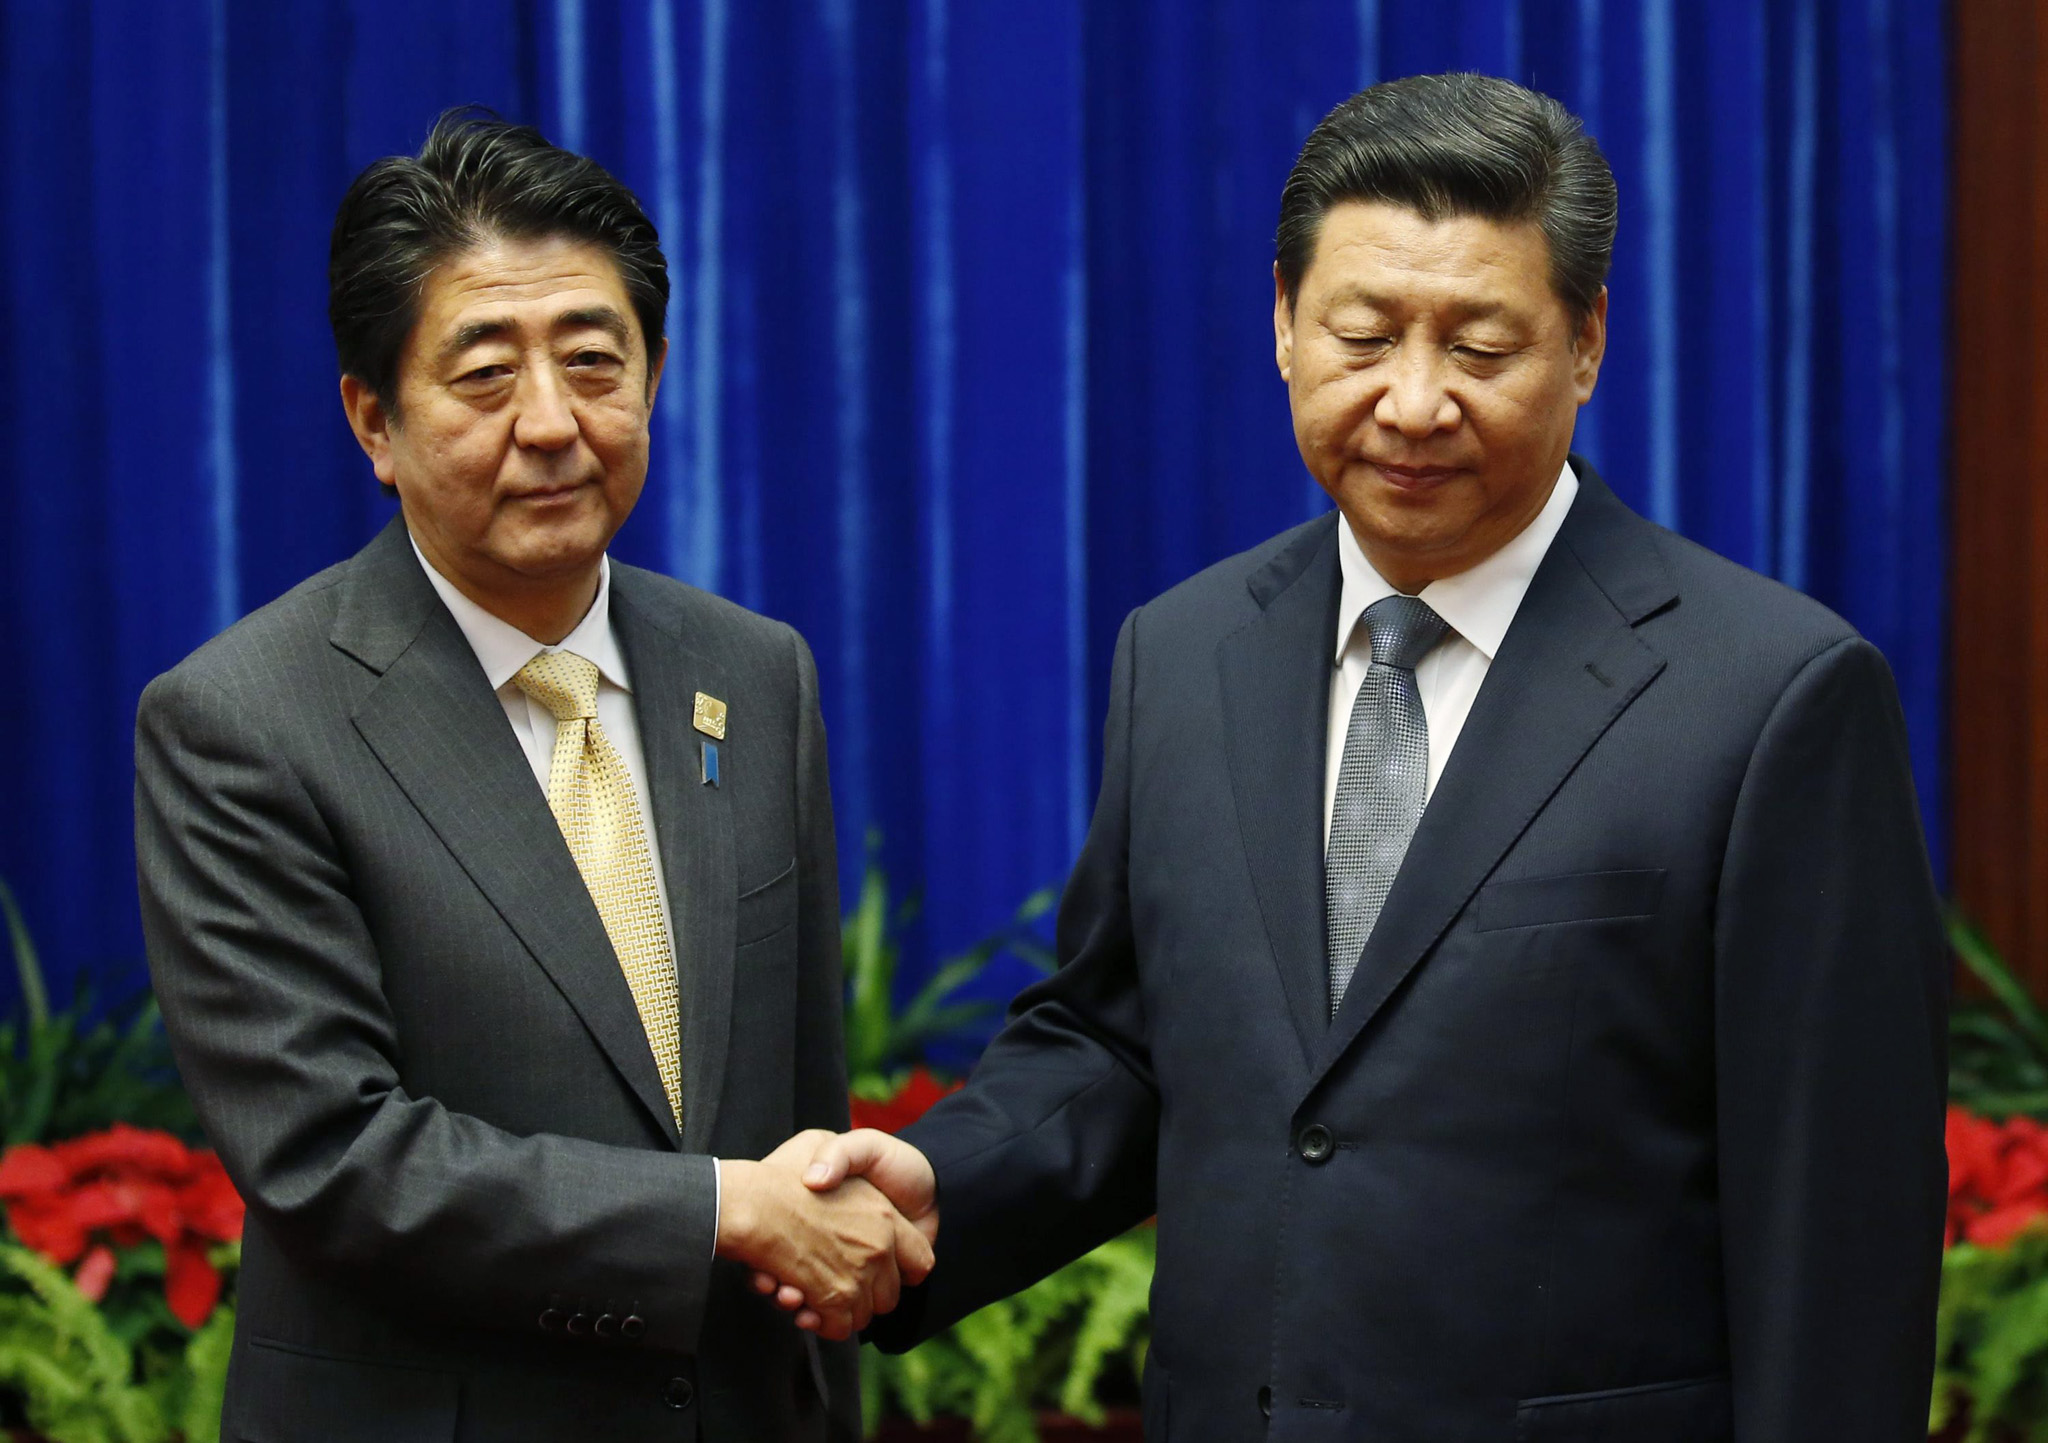 APEC 2014 Summit in Beijing, China...epa04483563 Japan's Prime Minister Shinzo Abe (L) shakes hands with China's President Xi Jinping (R), during their meeting at the Great Hall of the People, on the sidelines of the Asia Pacific Economic Cooperation (APEC) meetings, in Beijing, China, 10 November 2014. APEC is an inter-governmental forum with 21 member countries and regions, that seeks to promote sustainable growth and economic integration, and reduce trade barriers across the Asia-Pacific region. Jinping and Abe met for the first time to face to face talks, since they came into office, on the sidelines of the Asia Pacific Economic Cooperation (APEC) summit in Beijing, China, on 10 November 2014.  EPA/KIM KYUNG-HOON / POOL 0